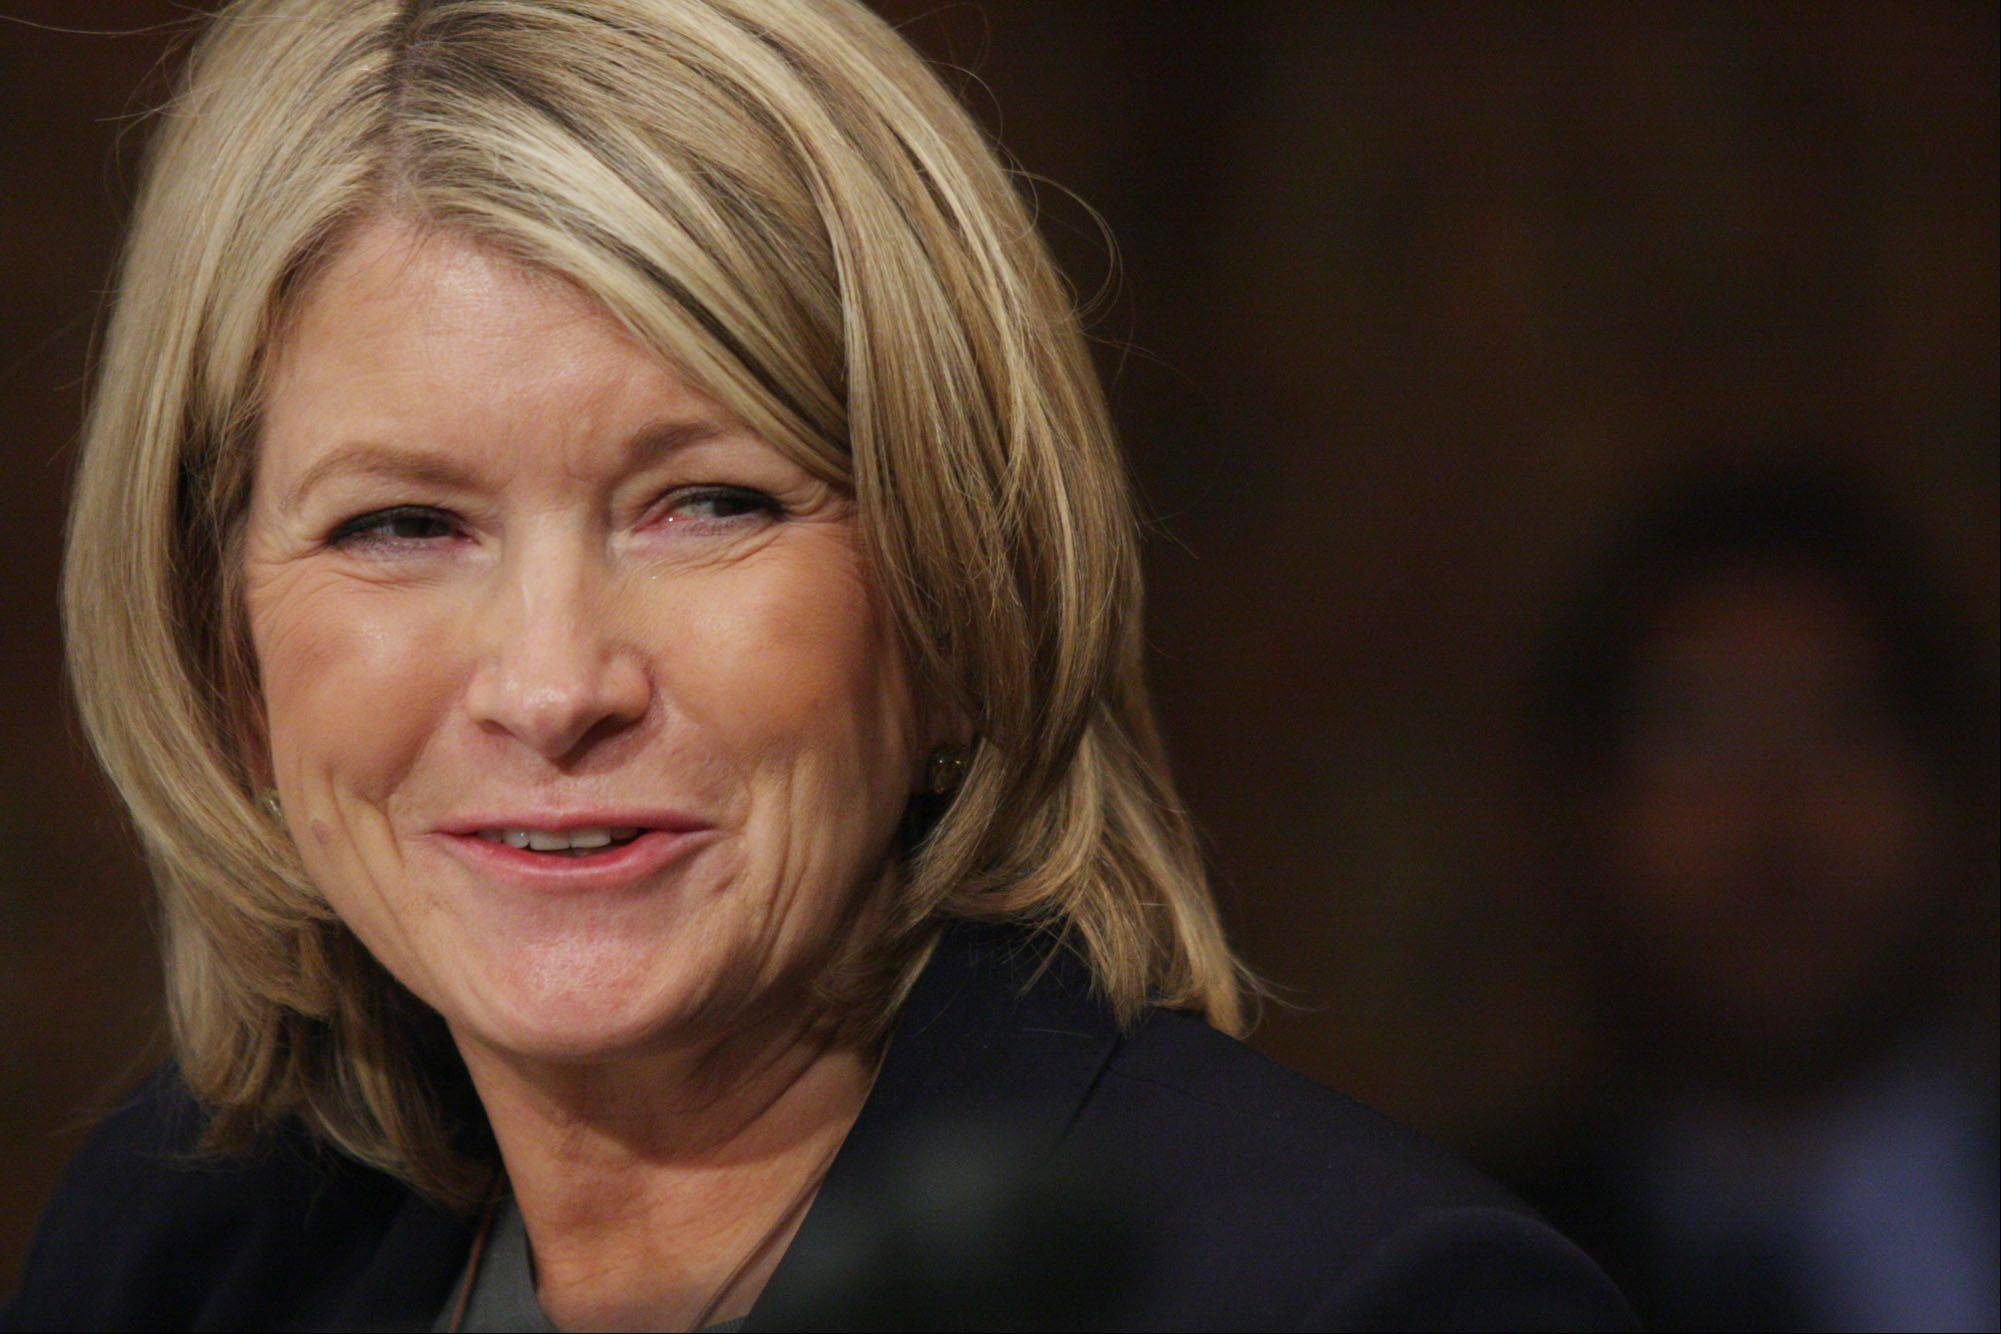 J.C. Penney is reportedly dumping the Martha Stewart brand, after sales of the home maven's goods didn't live up to expectations.